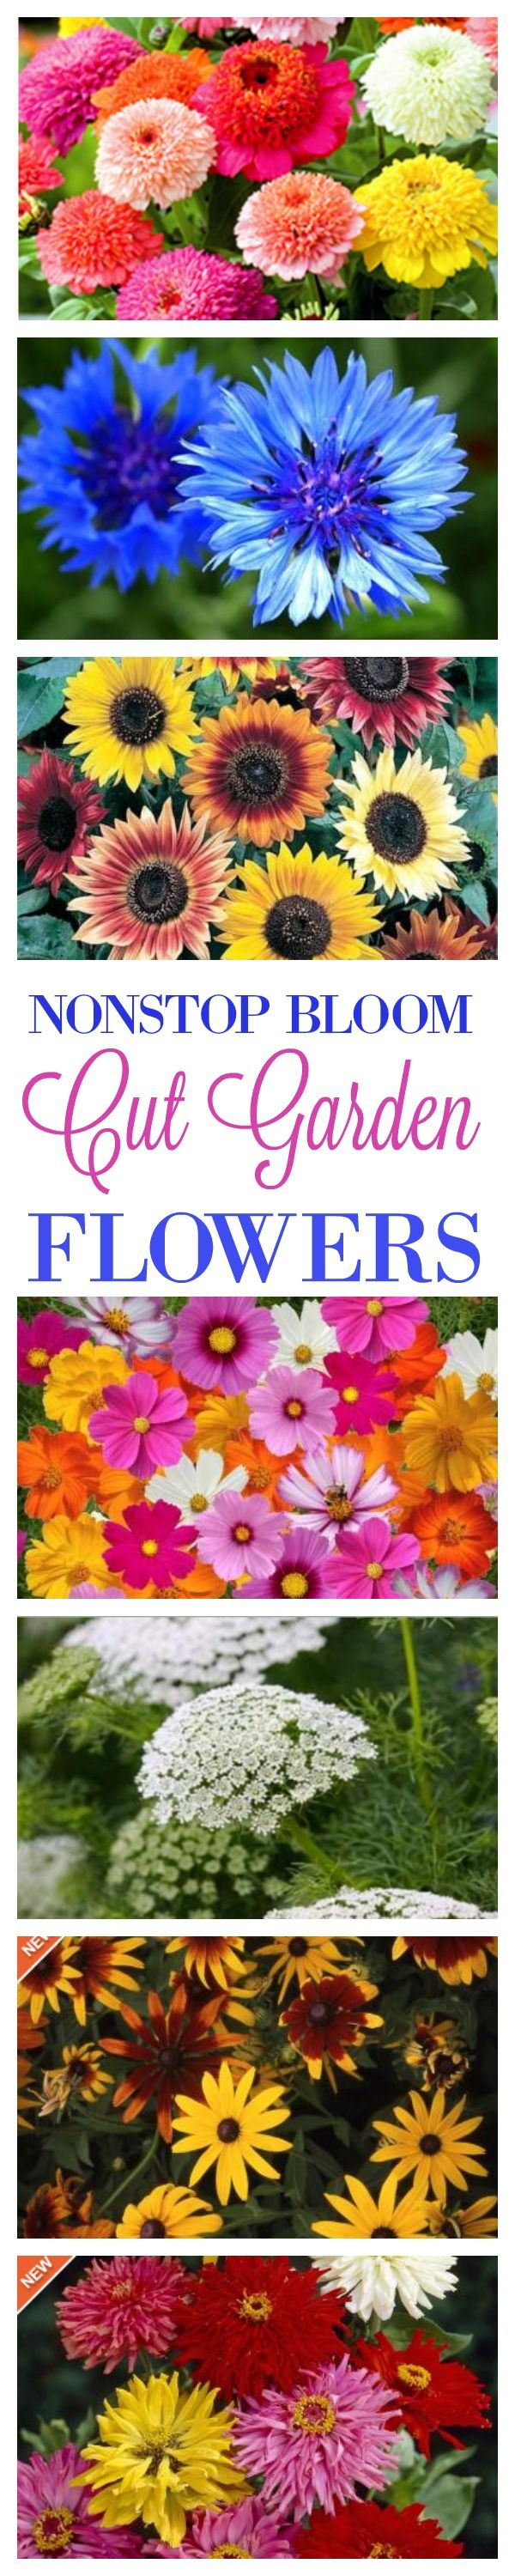 The Flower Seeds You'll Need To Buy For A Cut Flower Garden That Has Magnificent, Low Maintenance Blooms All Season Long